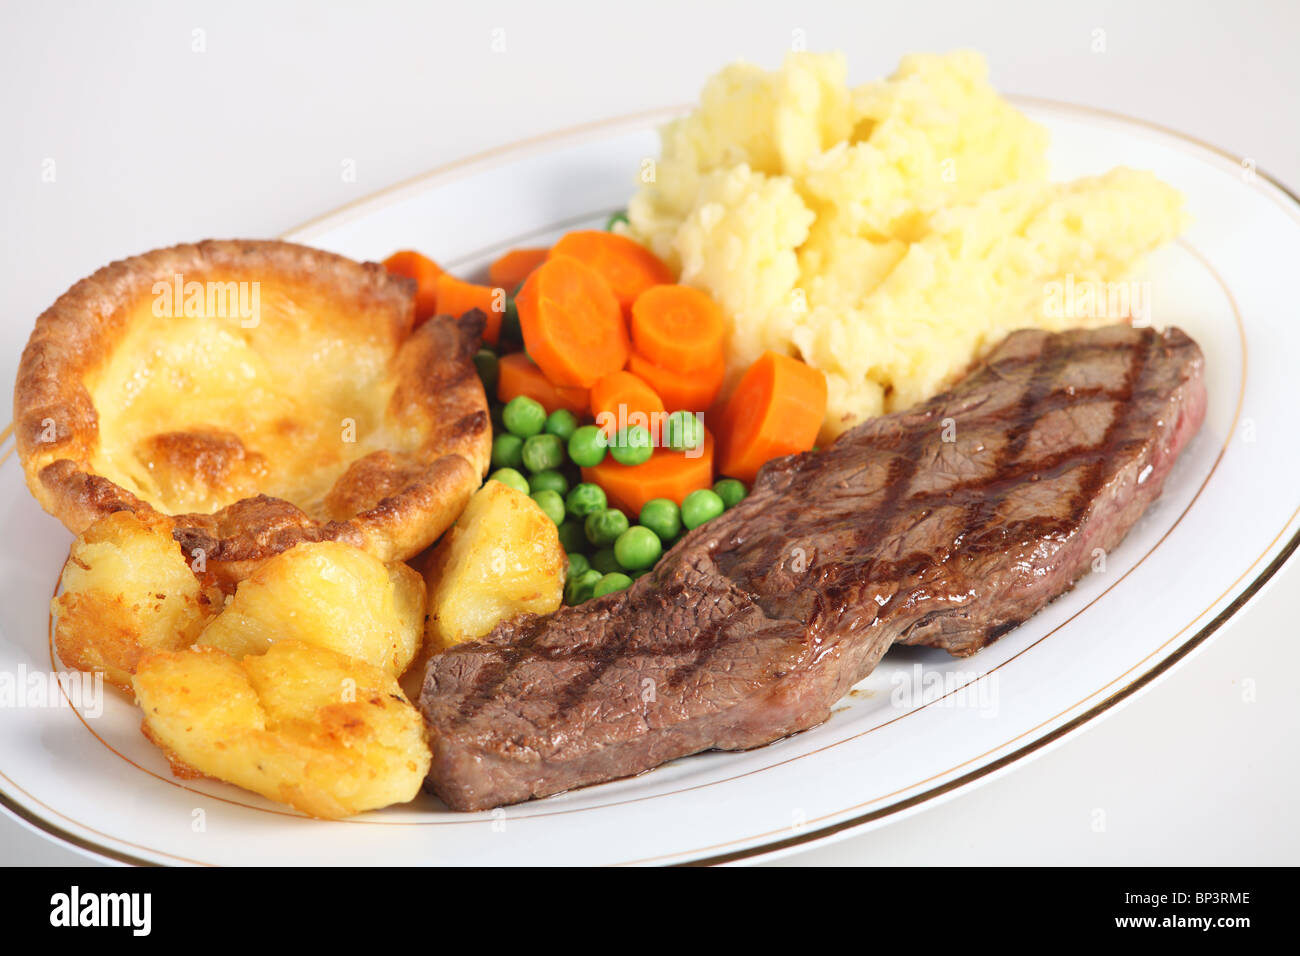 A traditional pub-grub style British meal of rump steak, mixed veg, mashed and roasted potatoes and - Stock Image